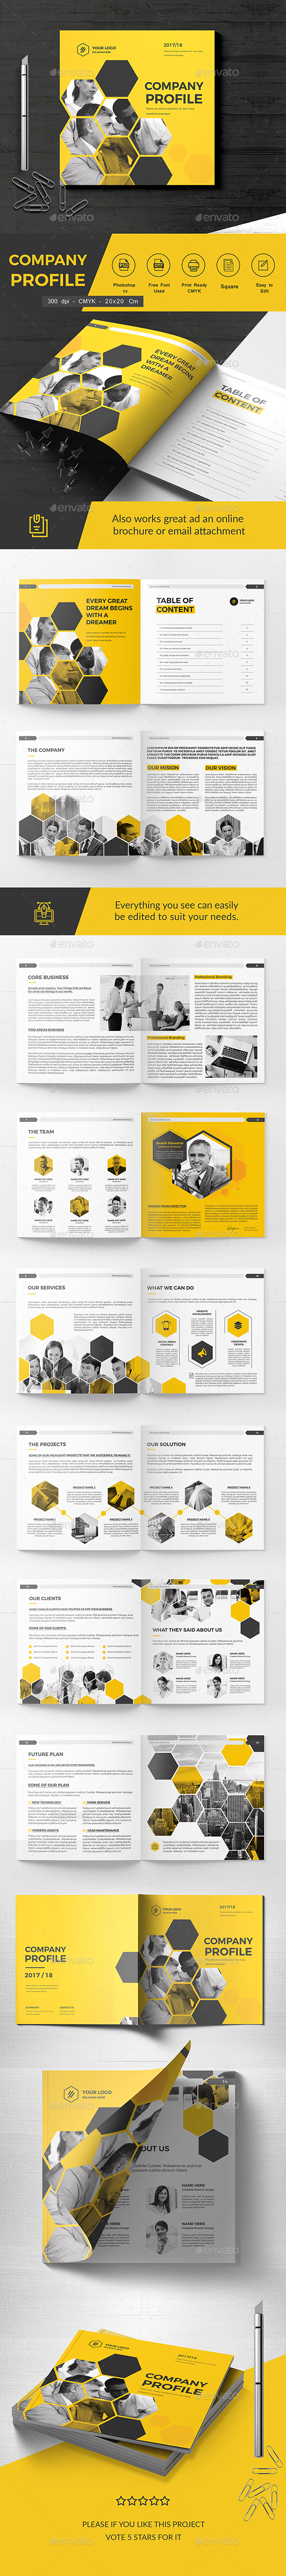 Square Company Brochure 20 Pages - Corporate Brochures